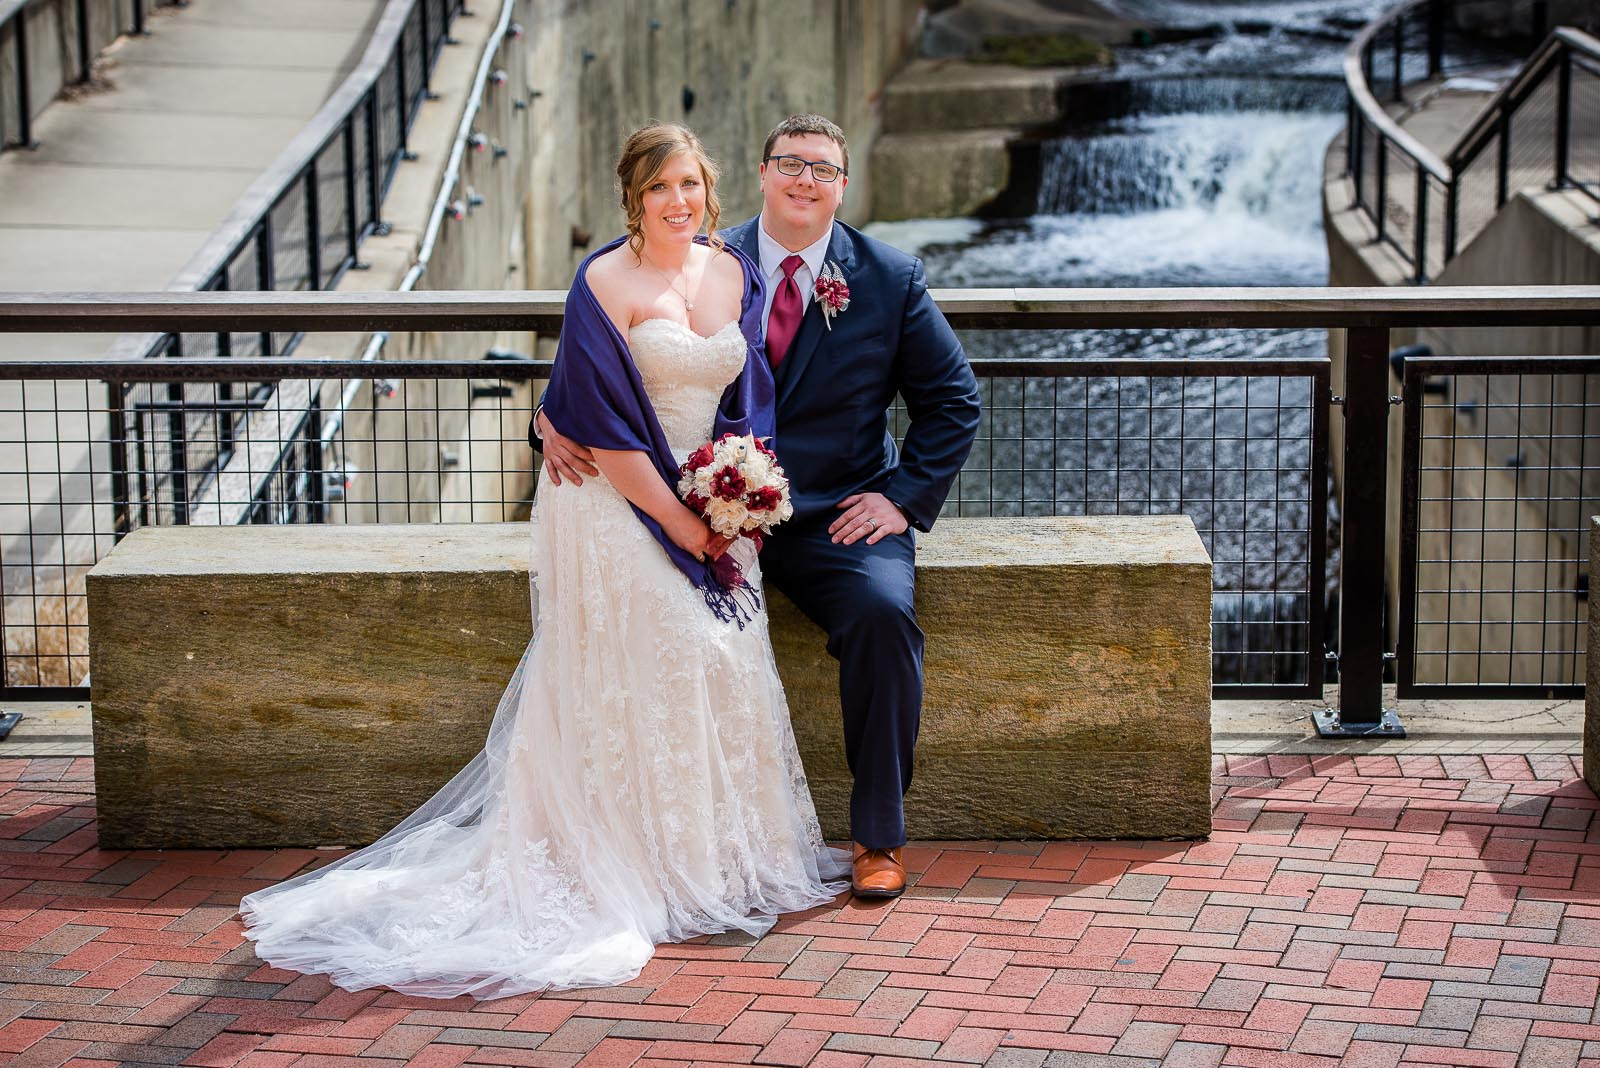 Eric_and_Christy_Photography_Blog_Wedding_Karen_Nick-30